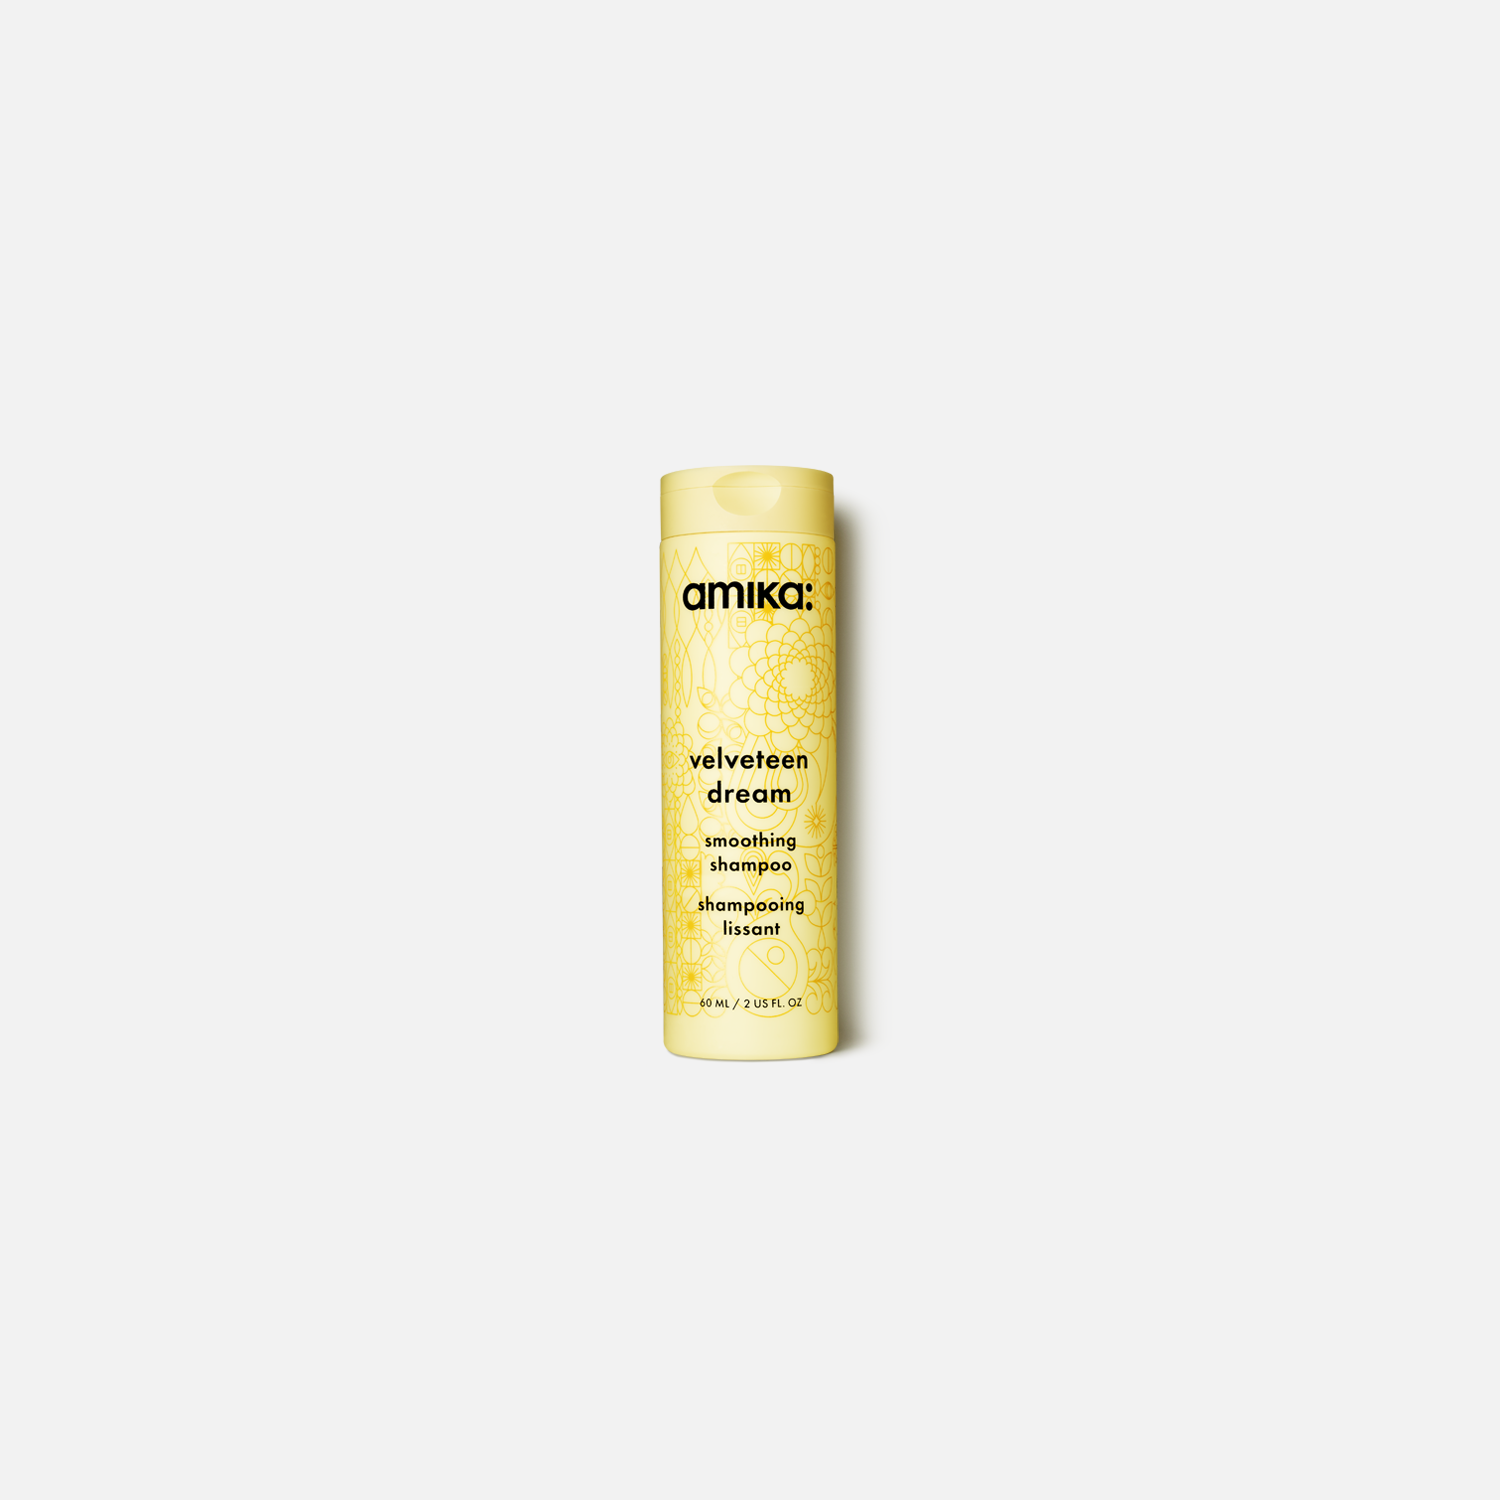 Velveteen Dream Smoothing Shampoo 2 oz | amika